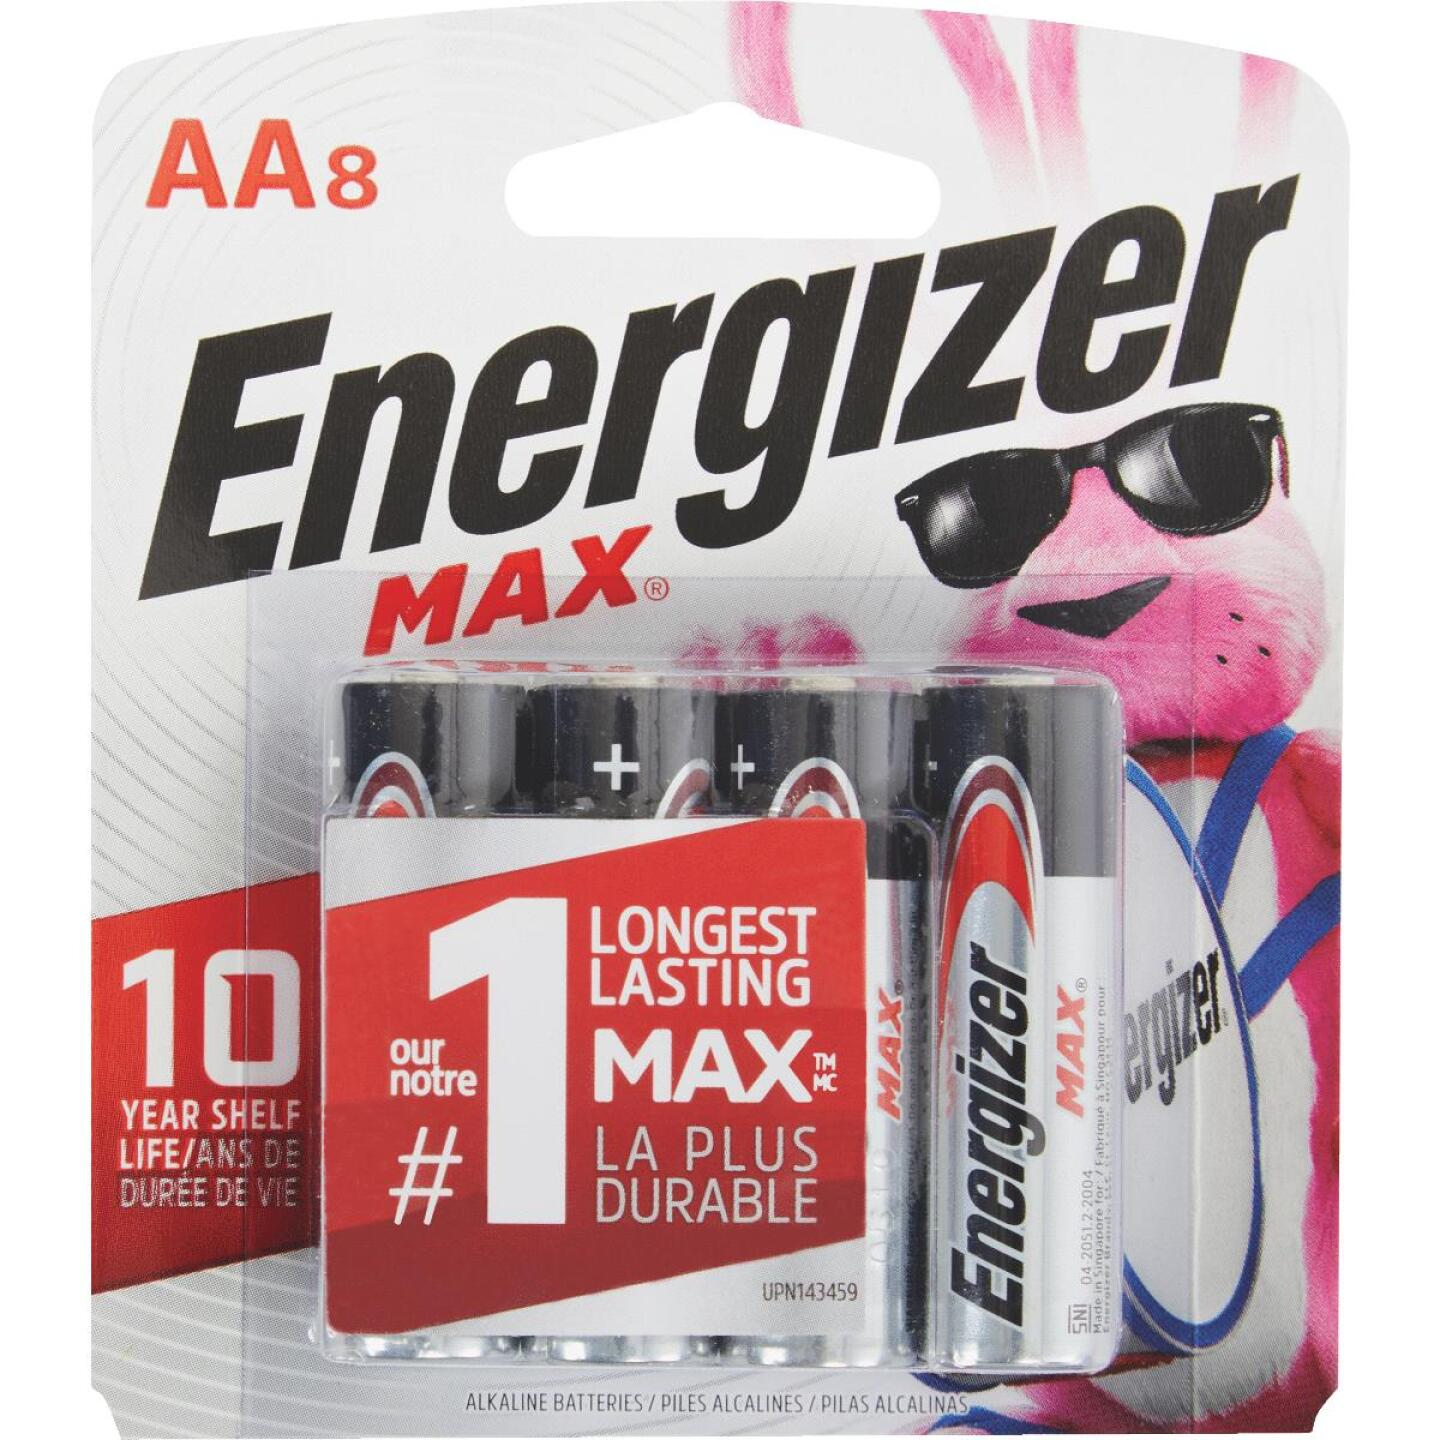 Energizer Max AA Alkaline Battery (8-Pack) Image 1